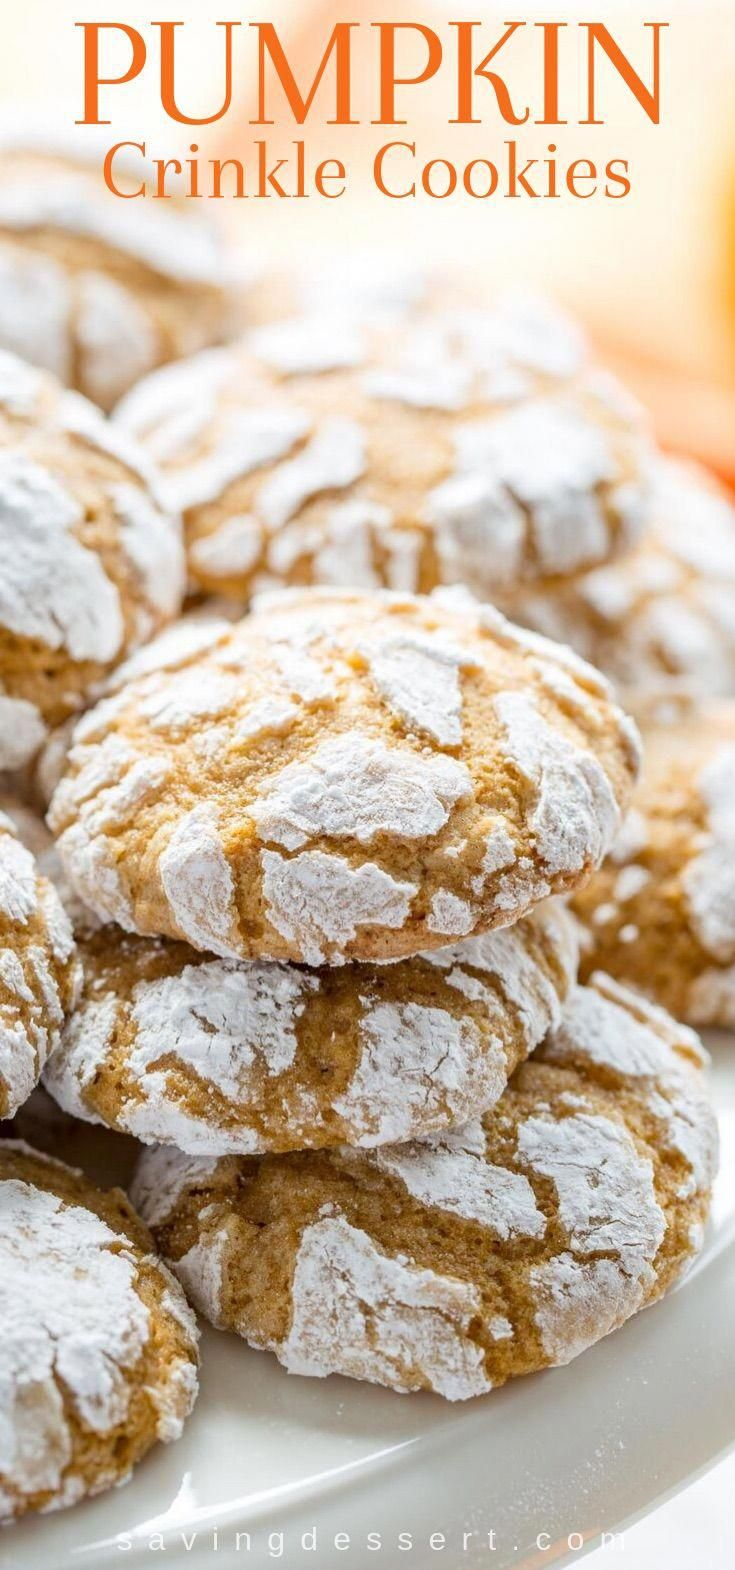 Pumpkin Crinkle Cookies  soft and sweet with plenty of pumpkin flavor and pumpkin pie spice these easy to make cookies are the perfect fall bite